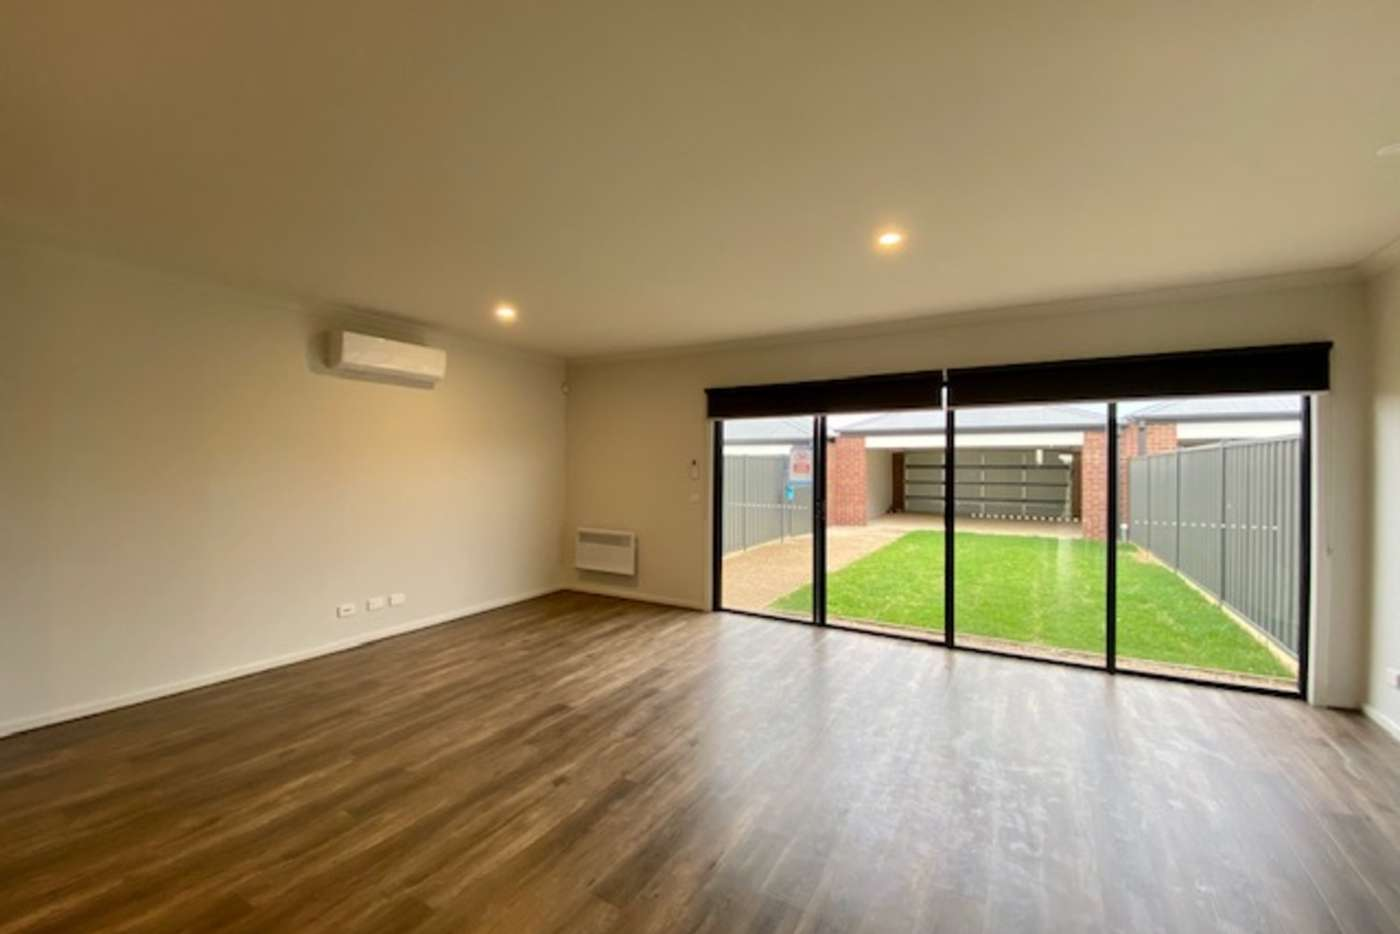 Sixth view of Homely townhouse listing, 16 Magenta Walk, Tarneit VIC 3029